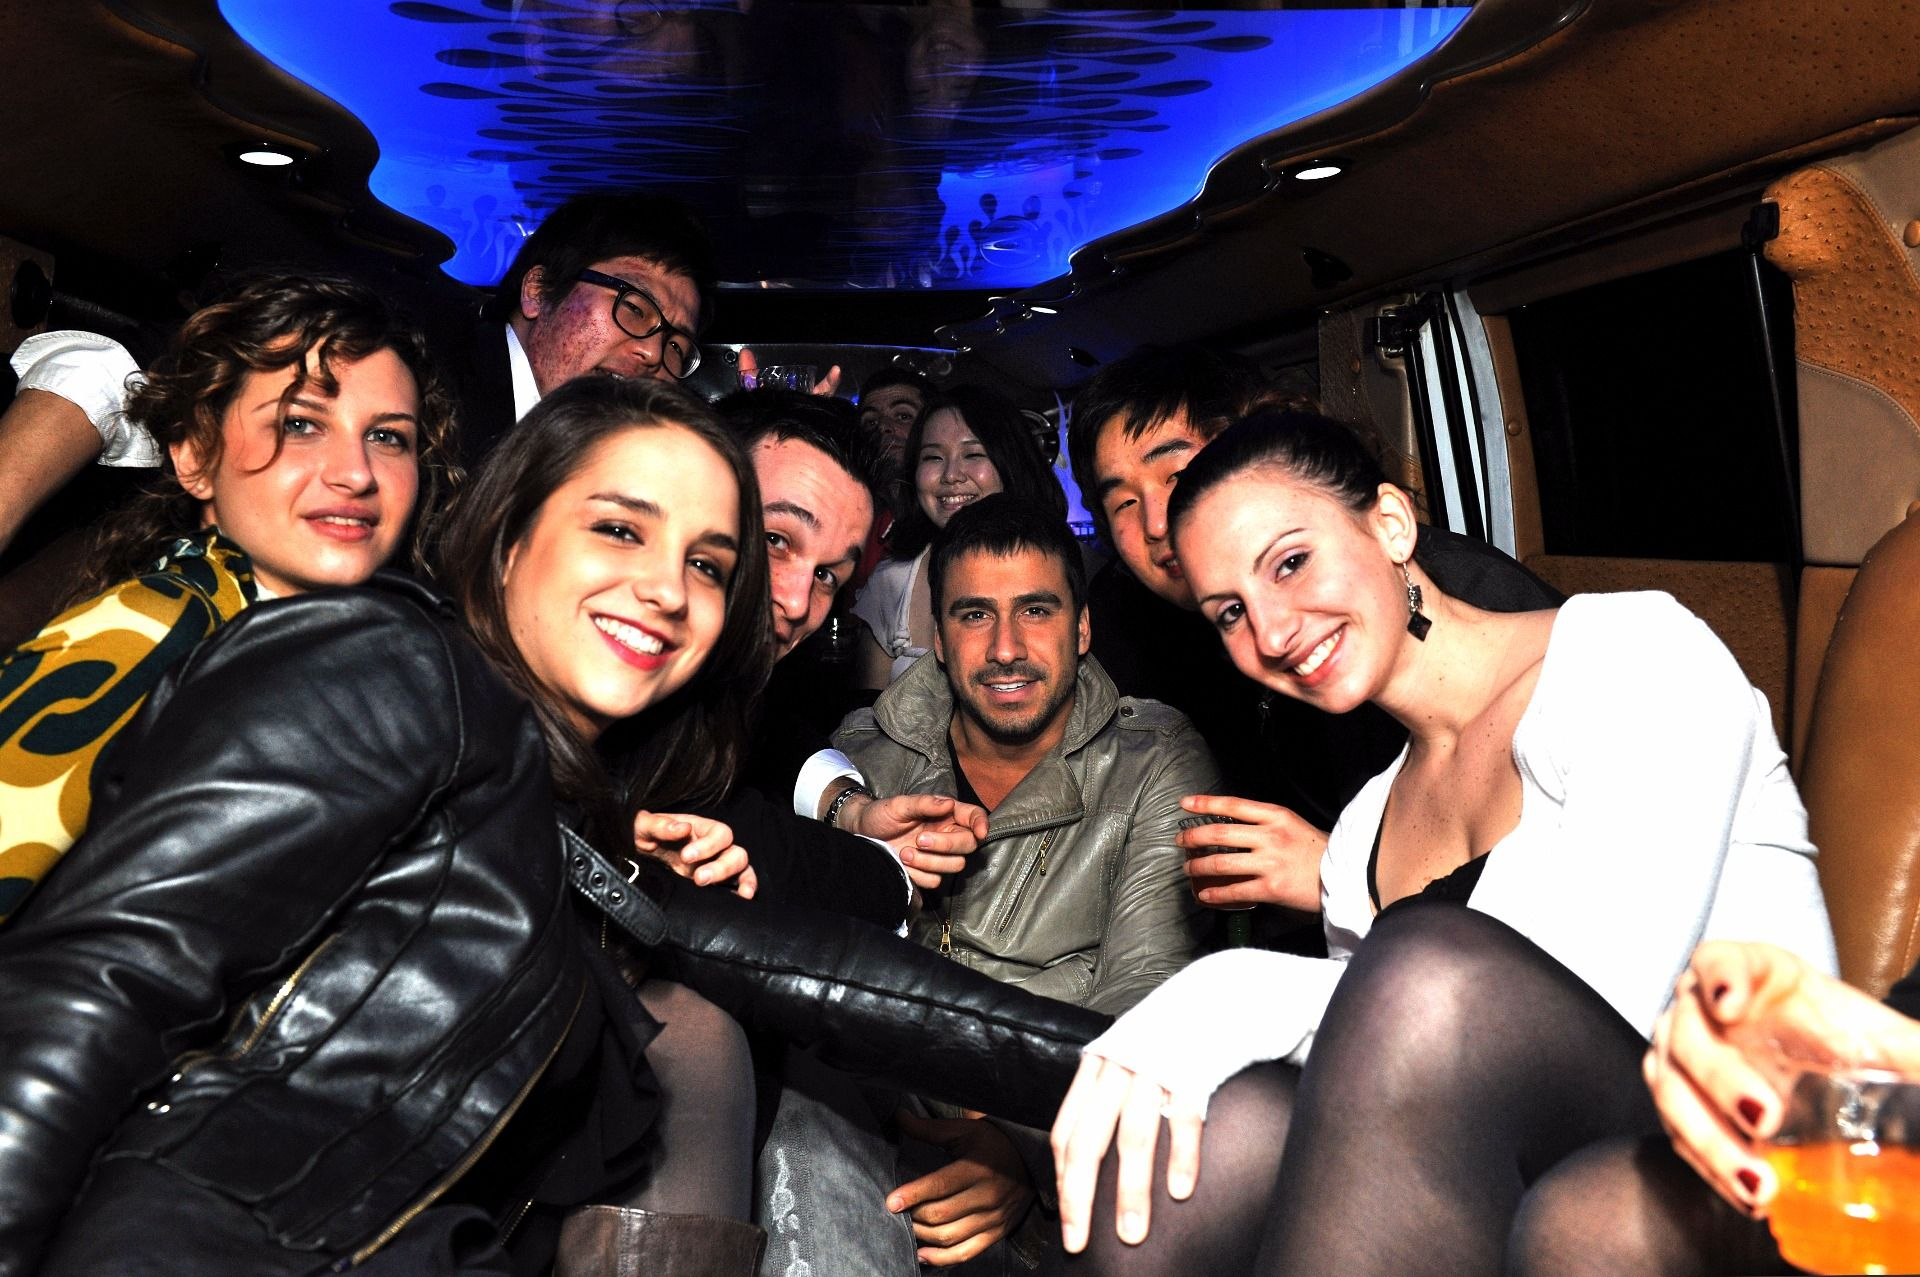 NYC Limo Party